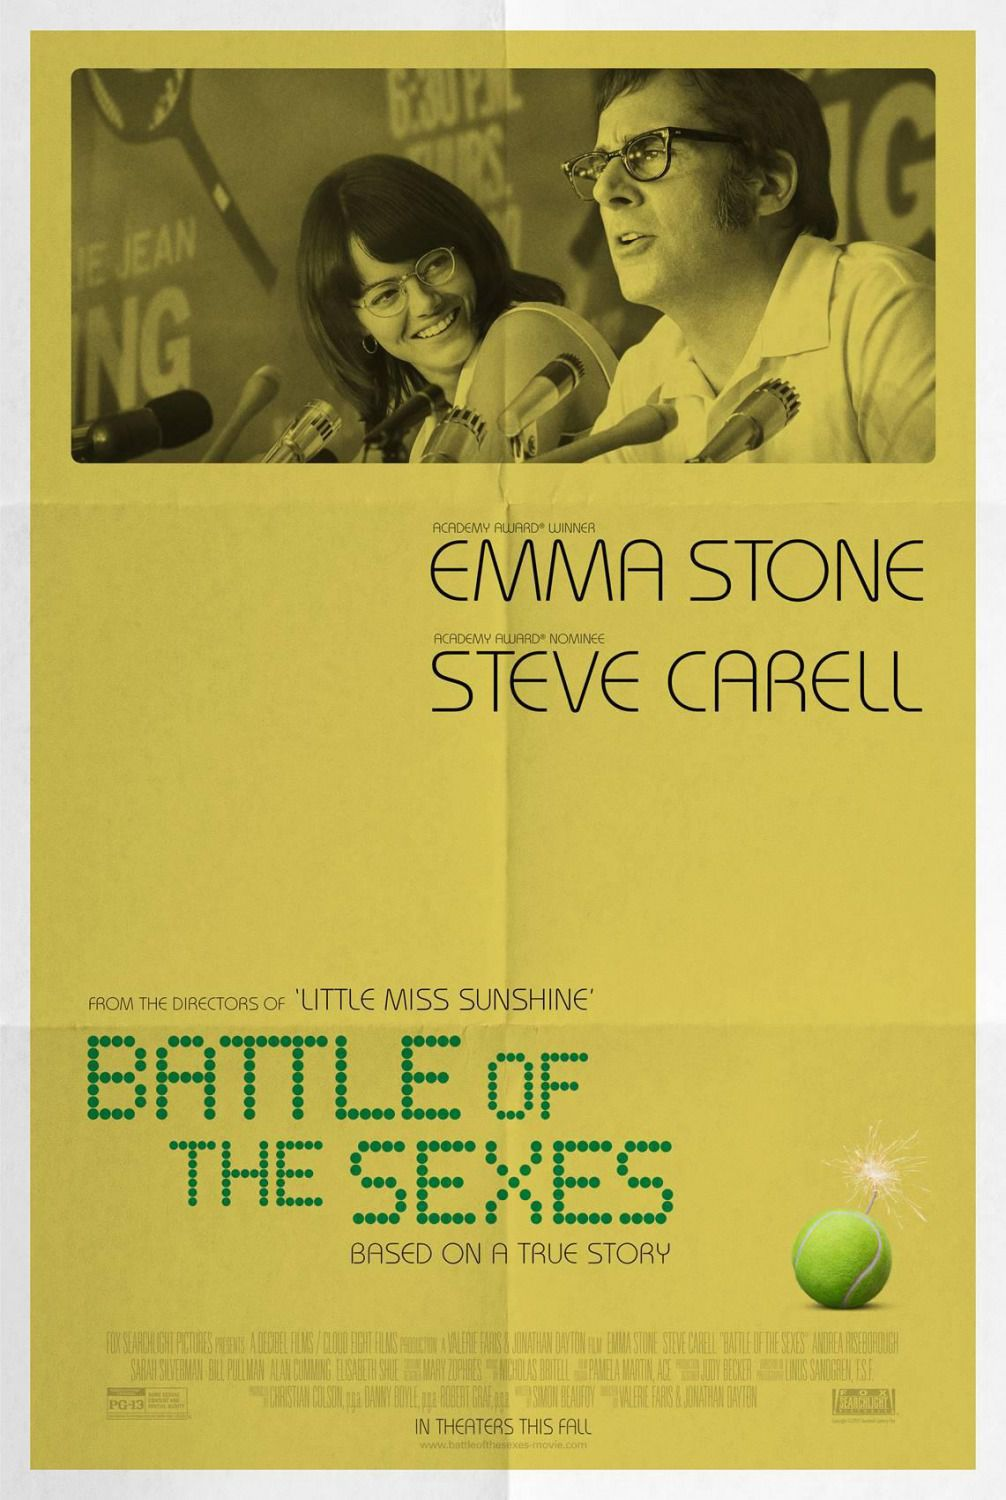 Battle of the Sexes - La Battaglia dei Sessi - film poster - Emma Stone - Steve Carell